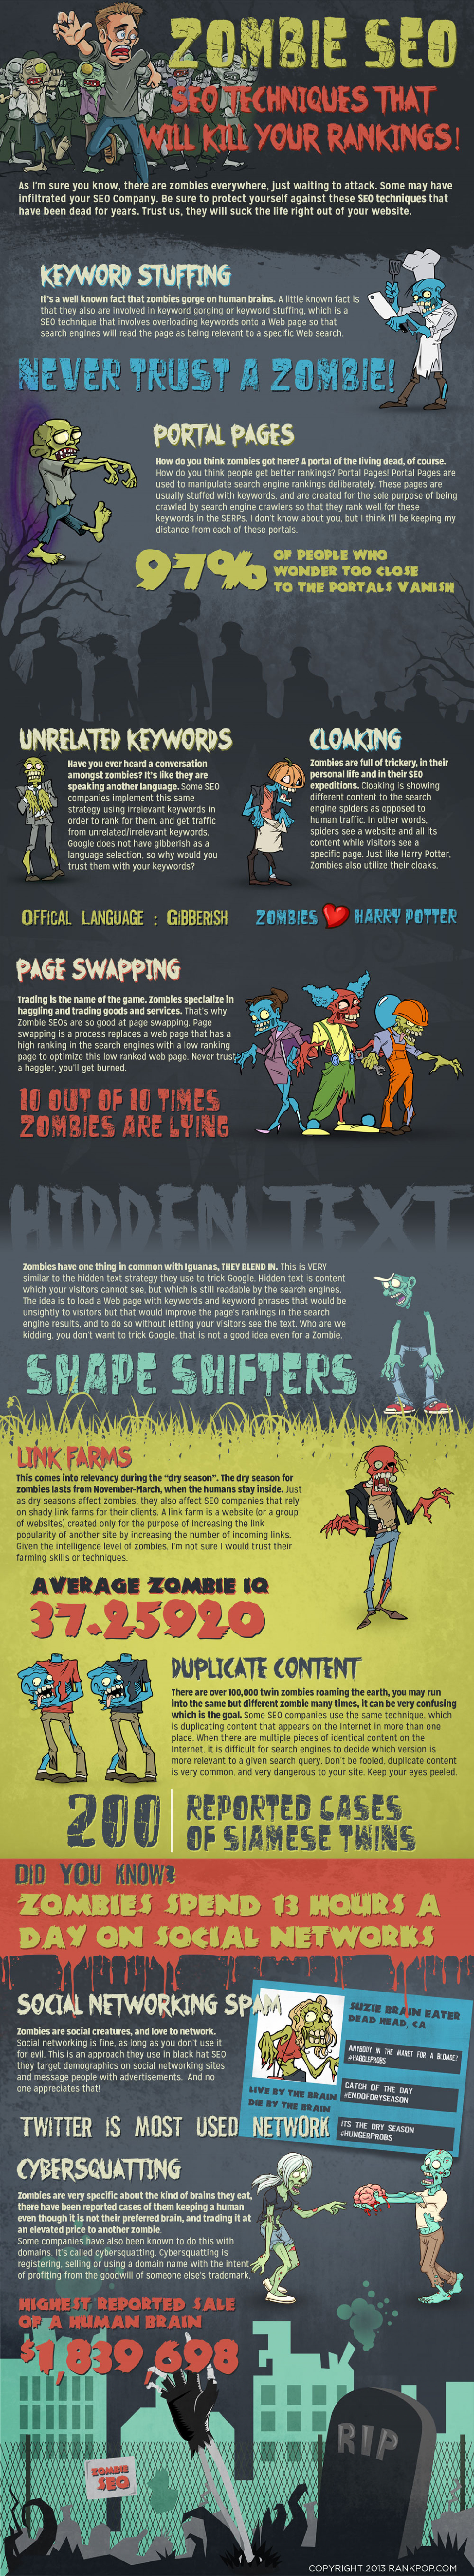 Zombie SEO, Techniques that will Kill your Rankings Infographic